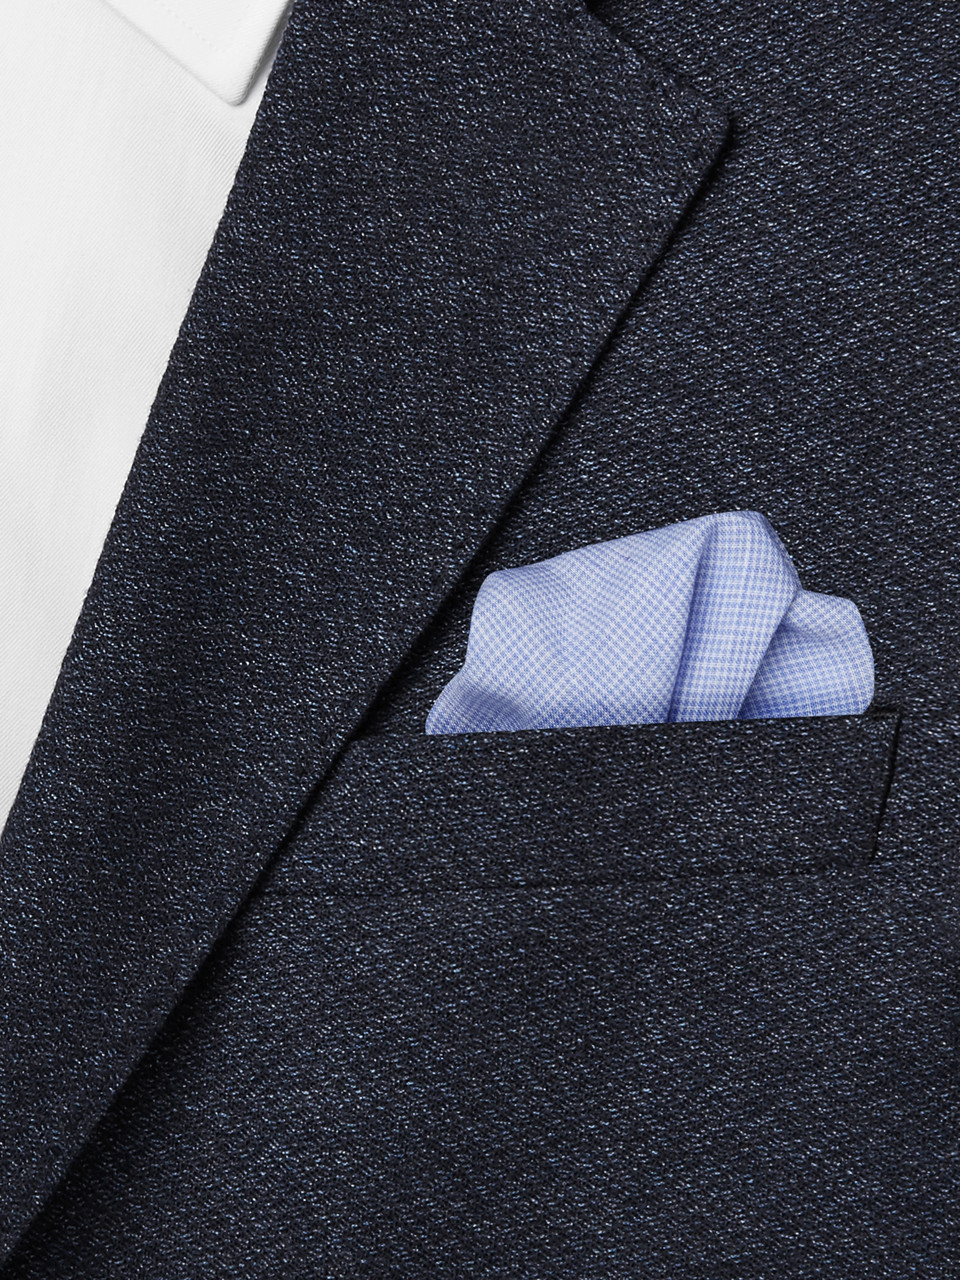 Anderson & Sheppard Puppytooth Linen Pocket Square